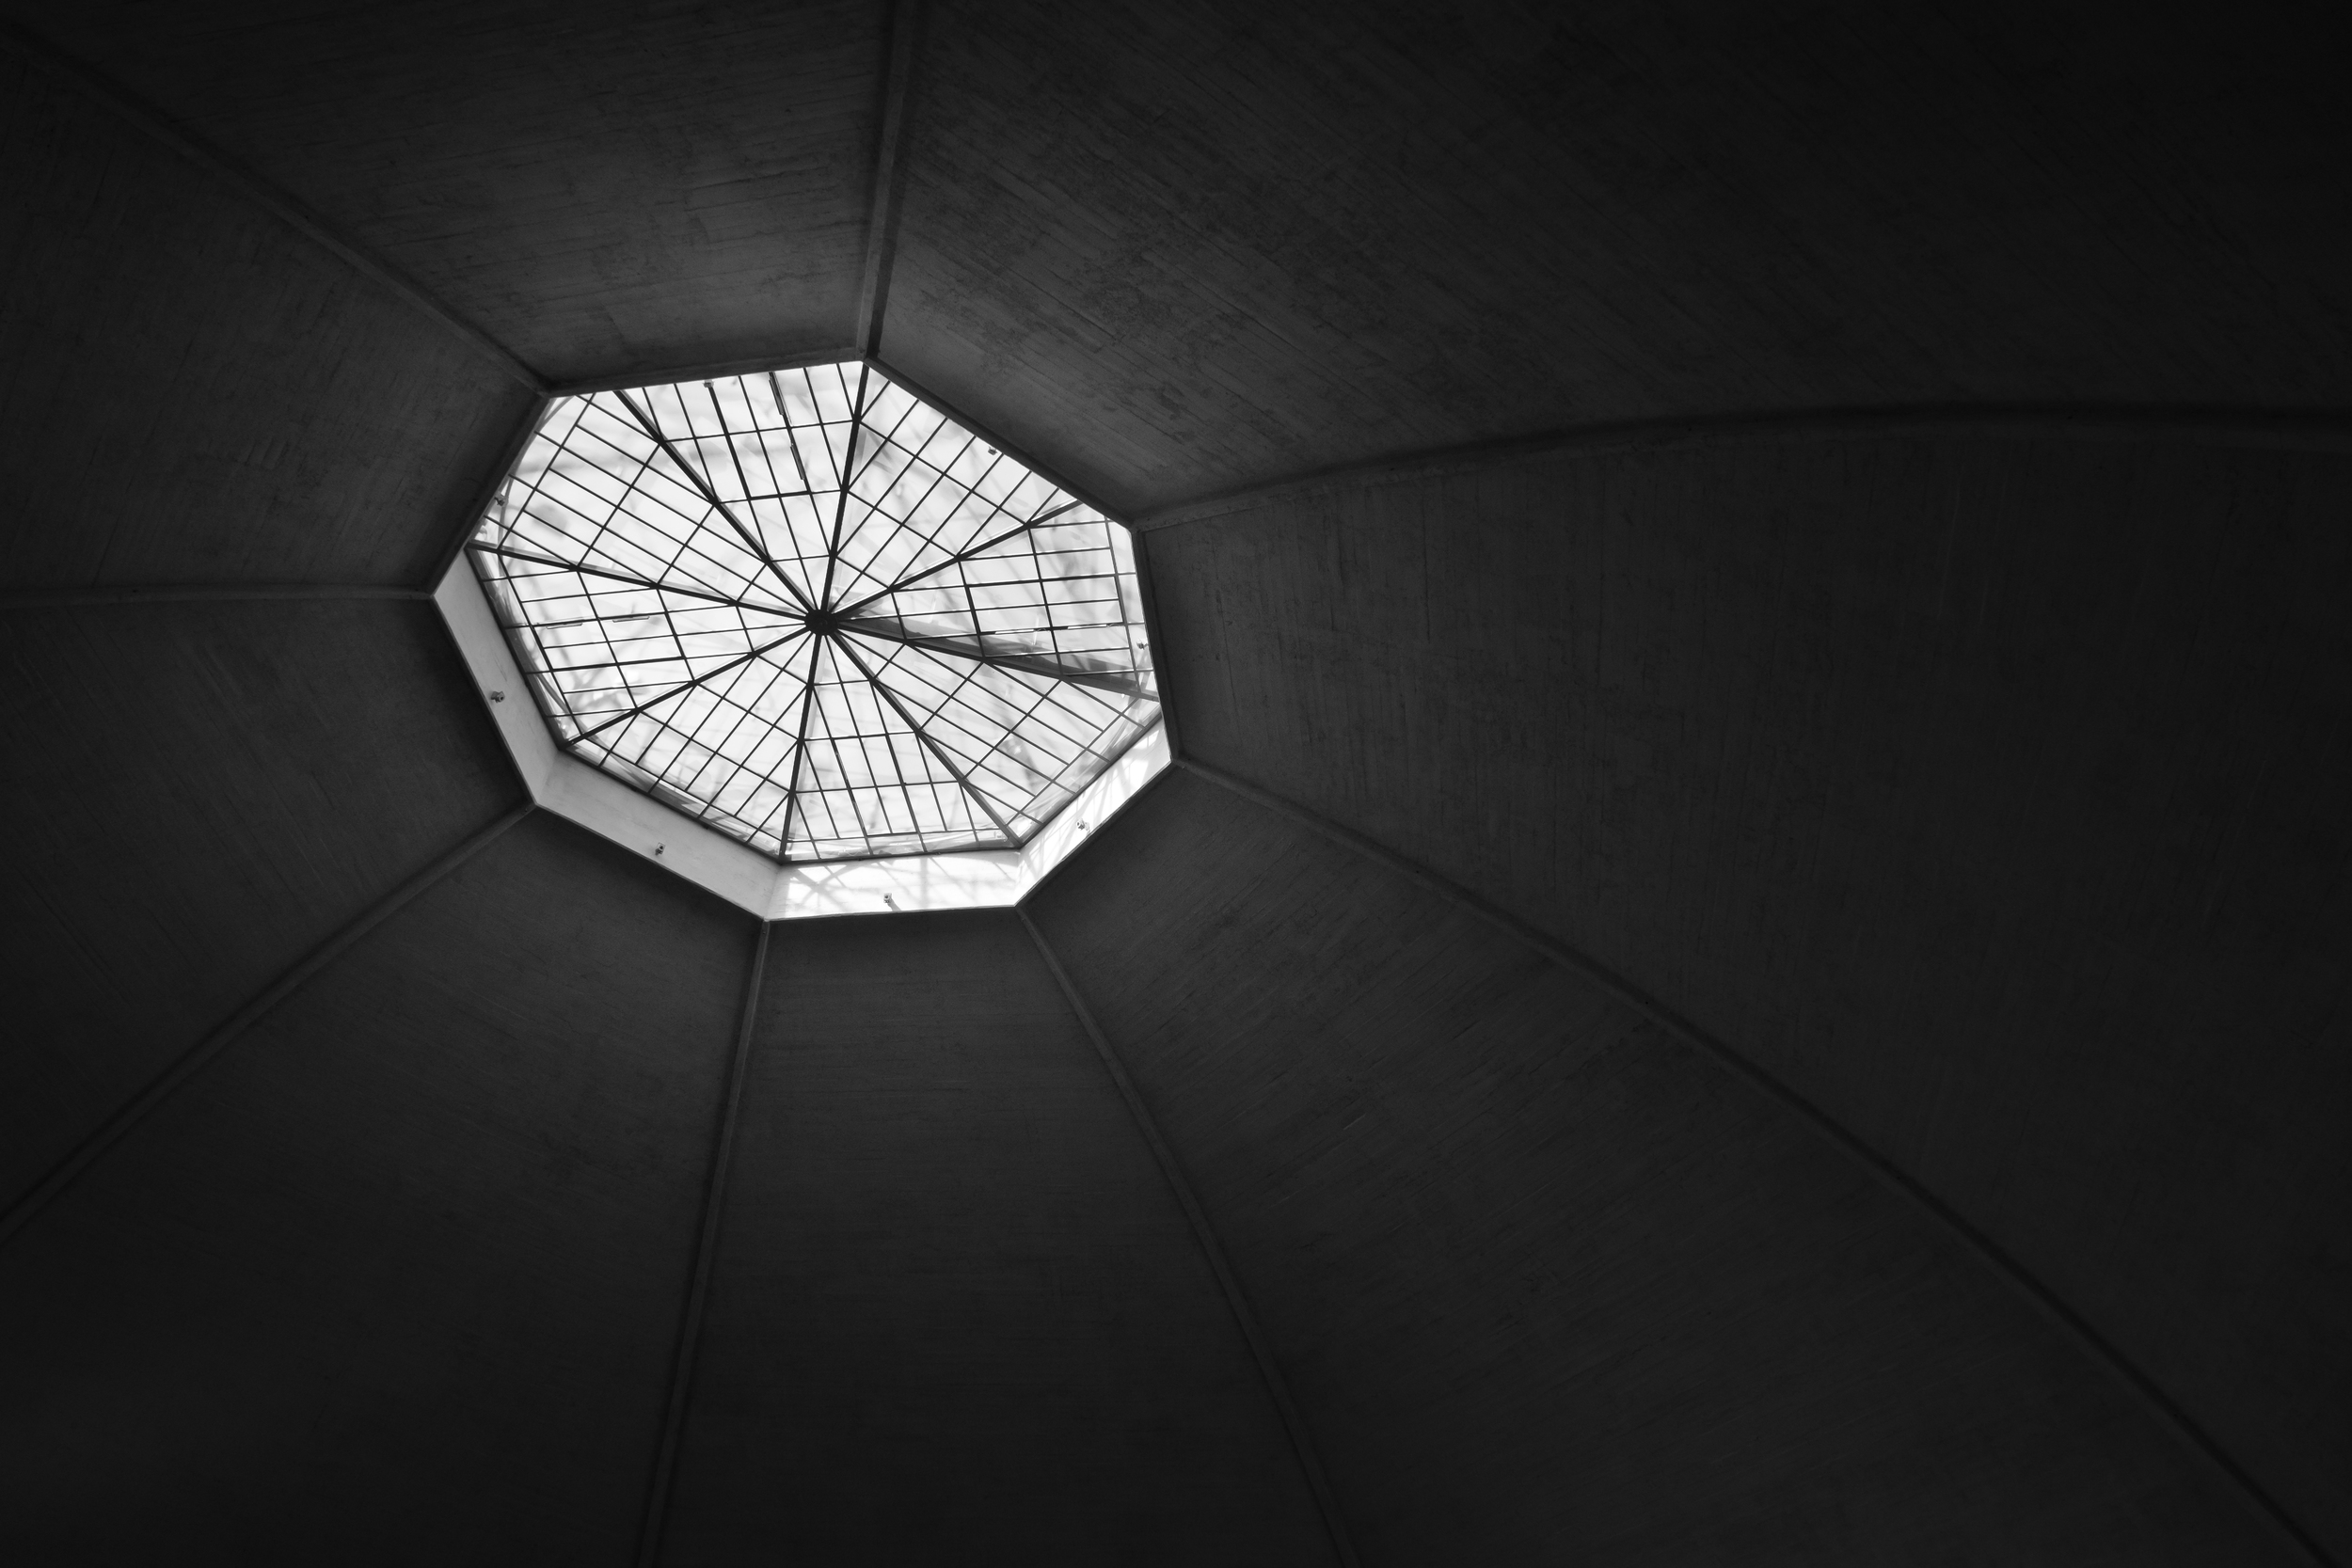 Roof of the old market hall in Basel, Switzerland 2013